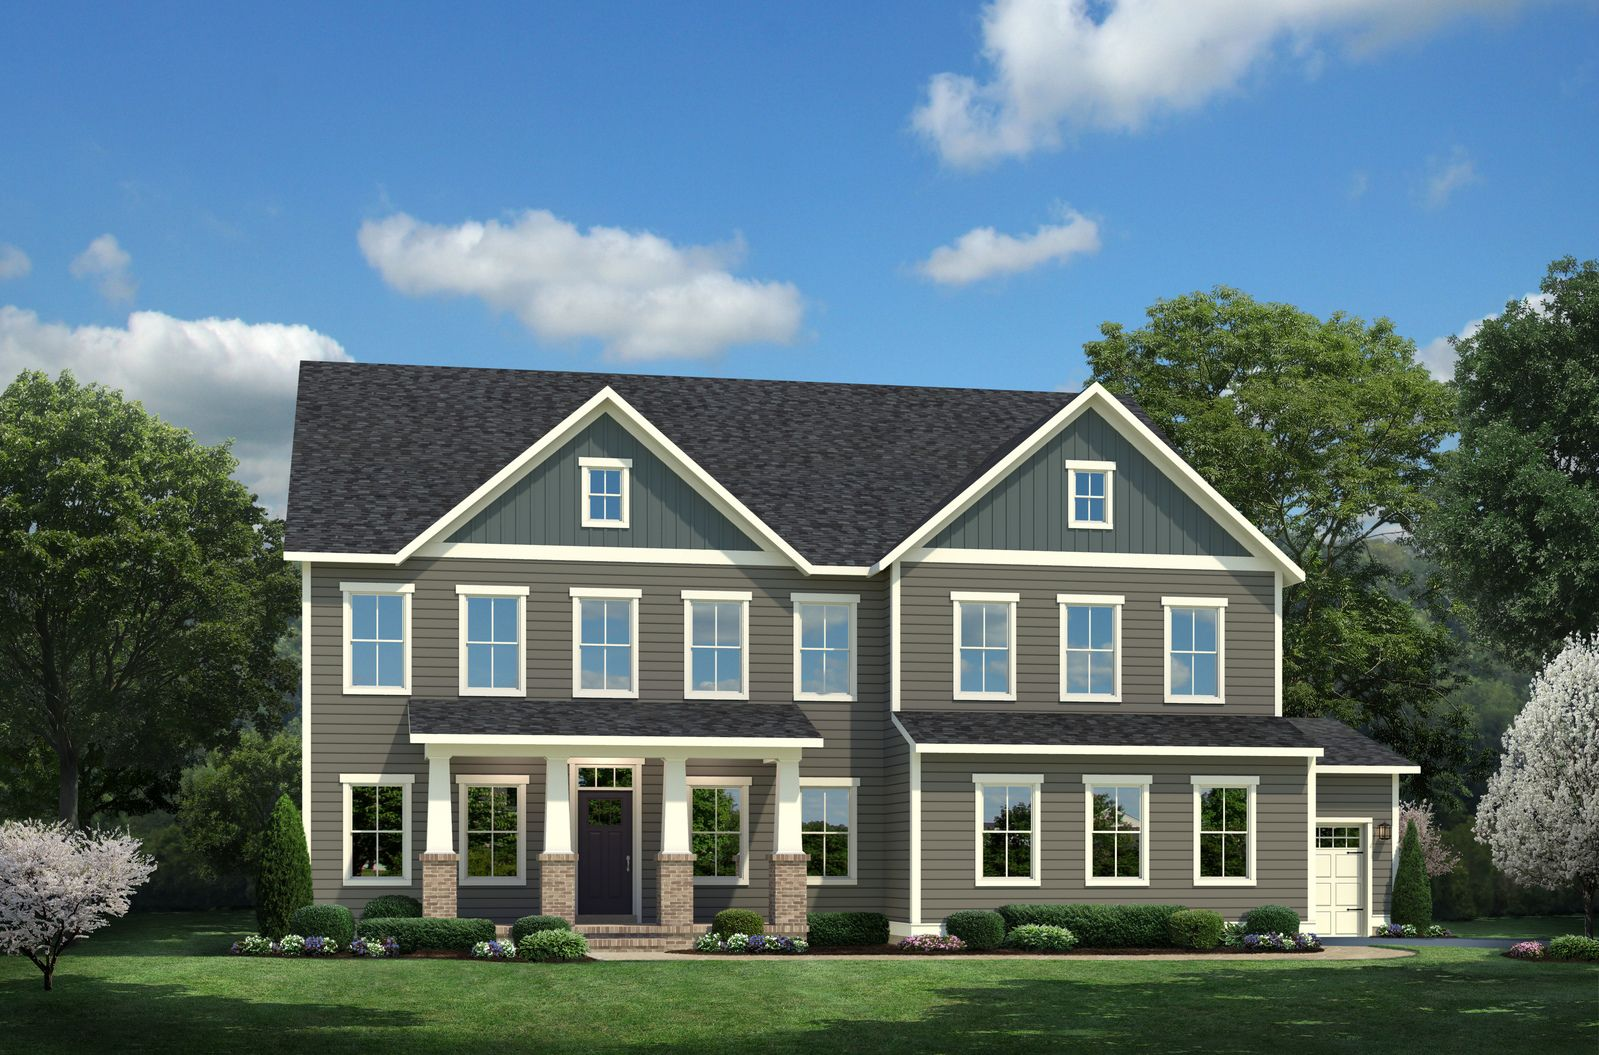 Single Family for Active at Potomac Shores Estates - Versailles At Potomac Shores 2175 Potomac River Blvd. Dumfries, Virginia 22026 United States